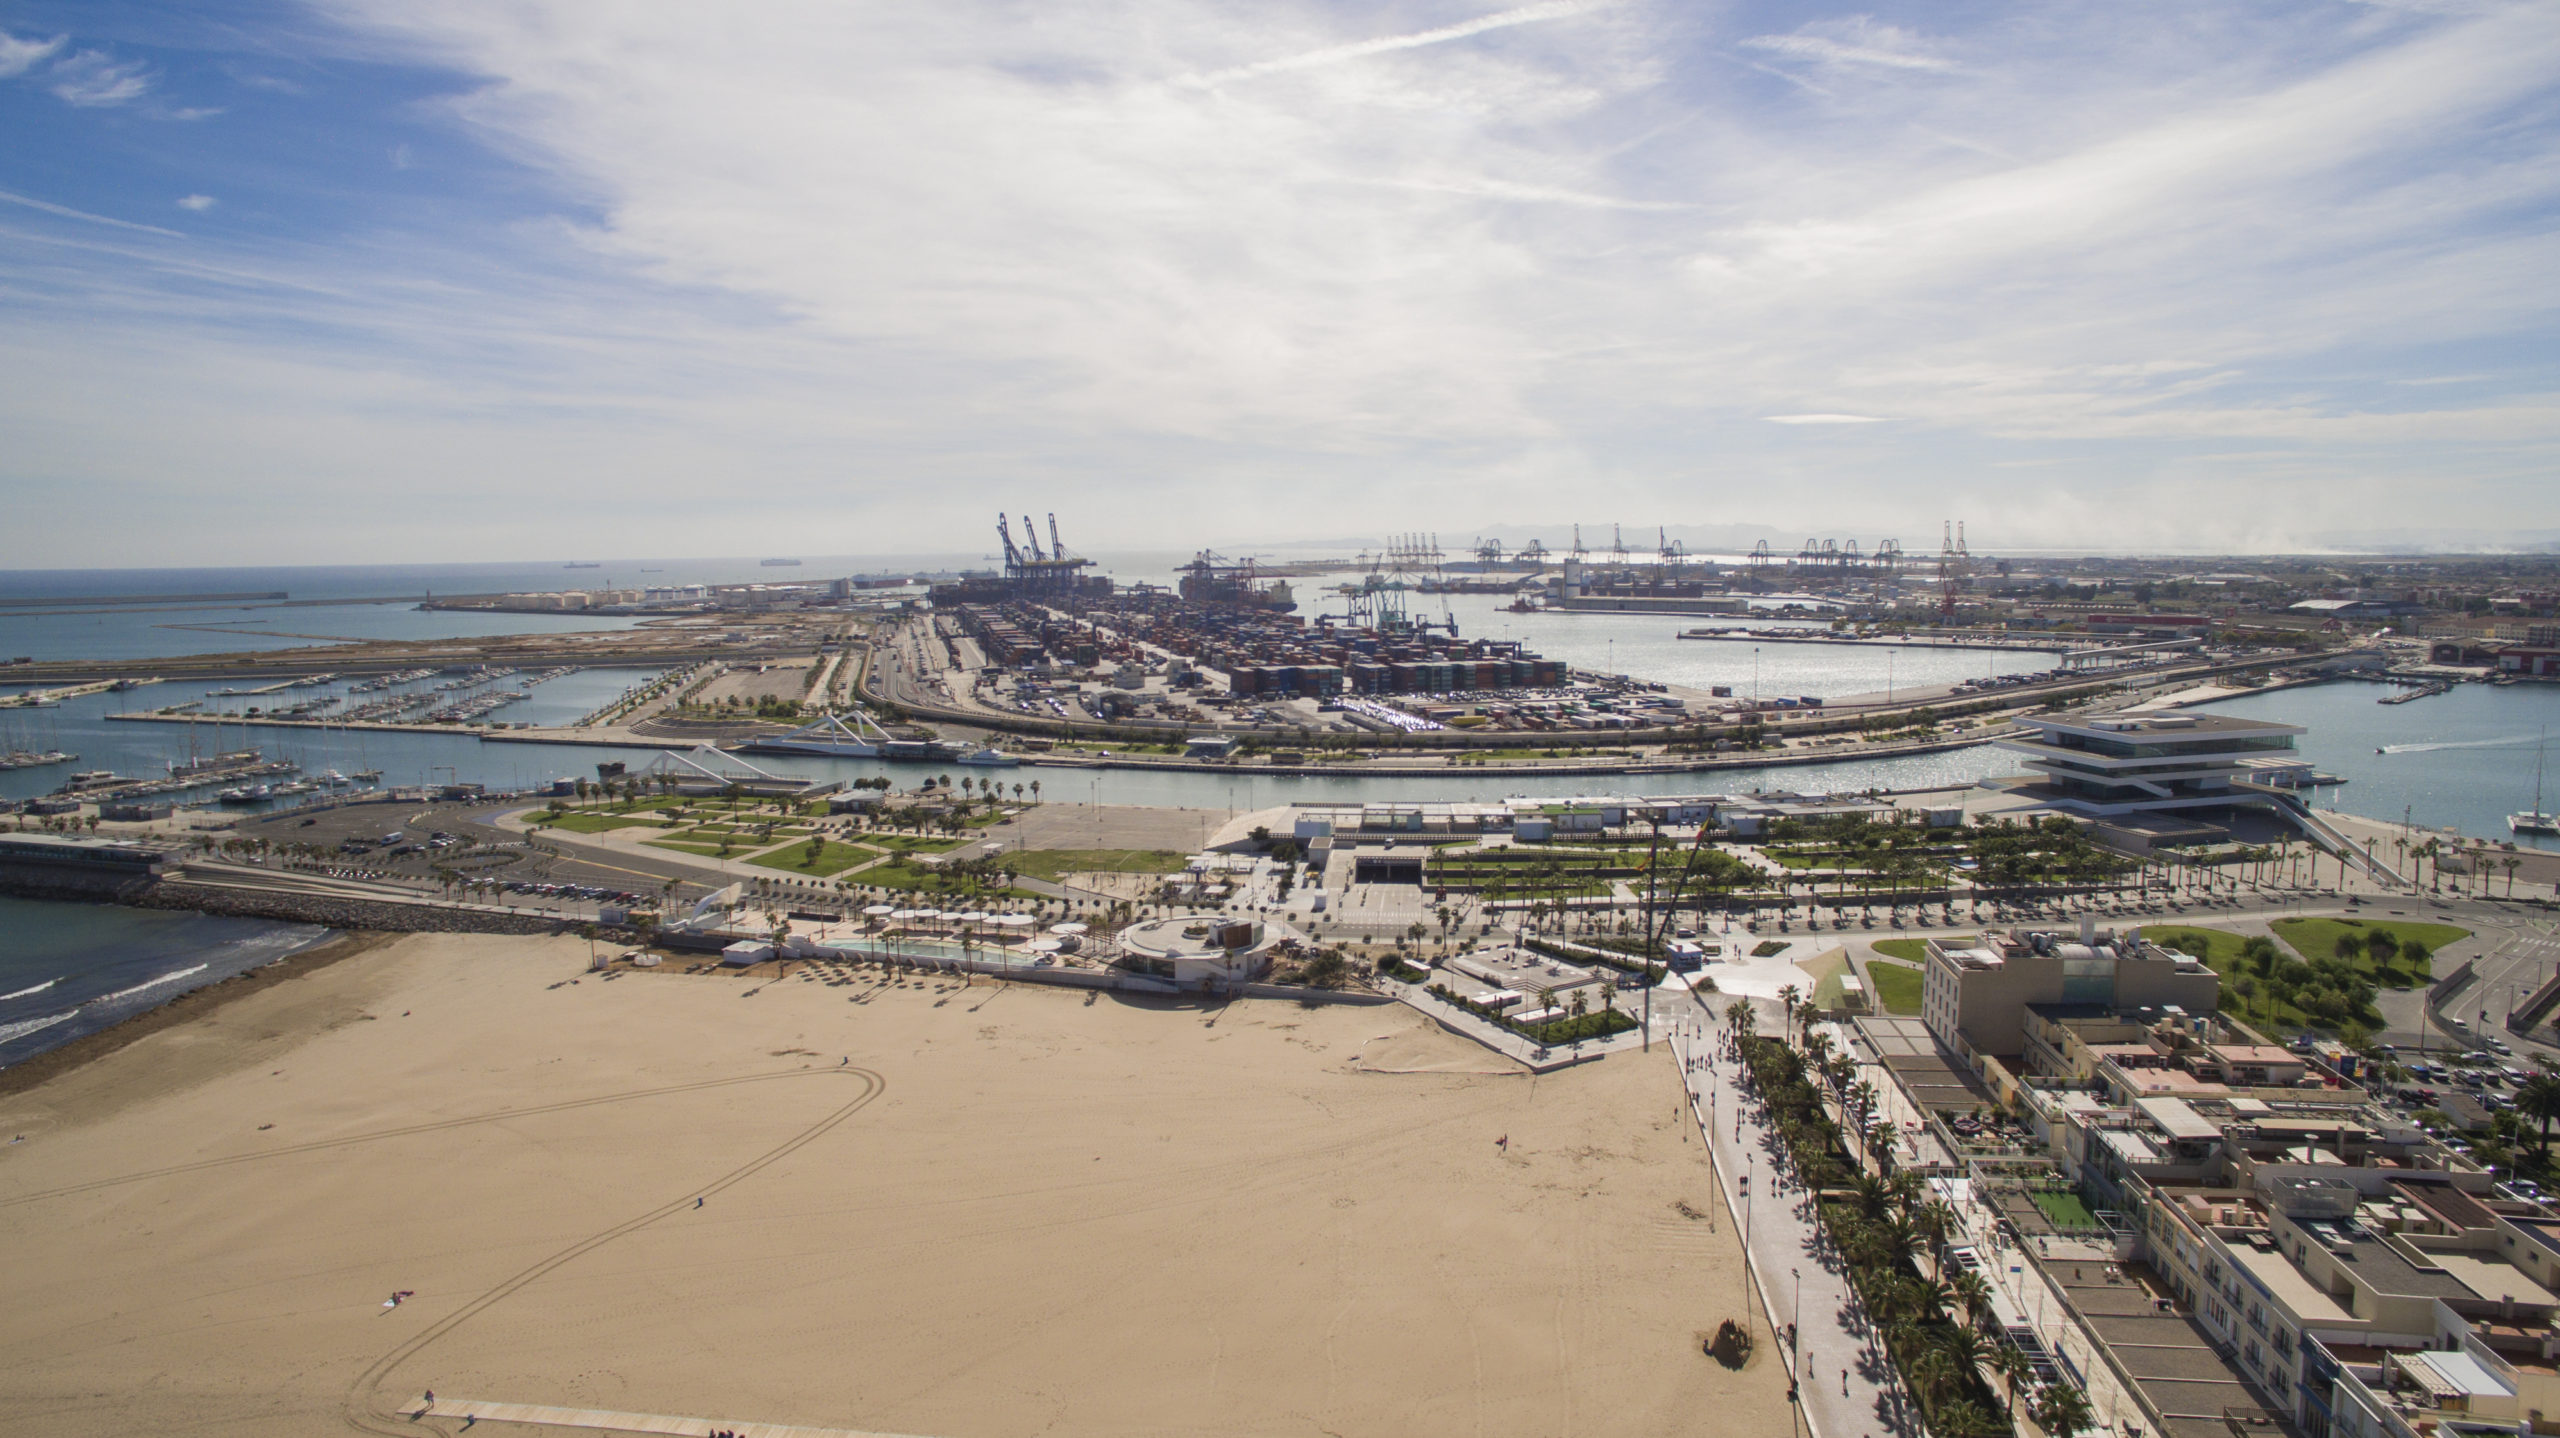 High angle view of harbor amidst sea. Buildings in Valencia on sunny day. Scenic view of sky over city.